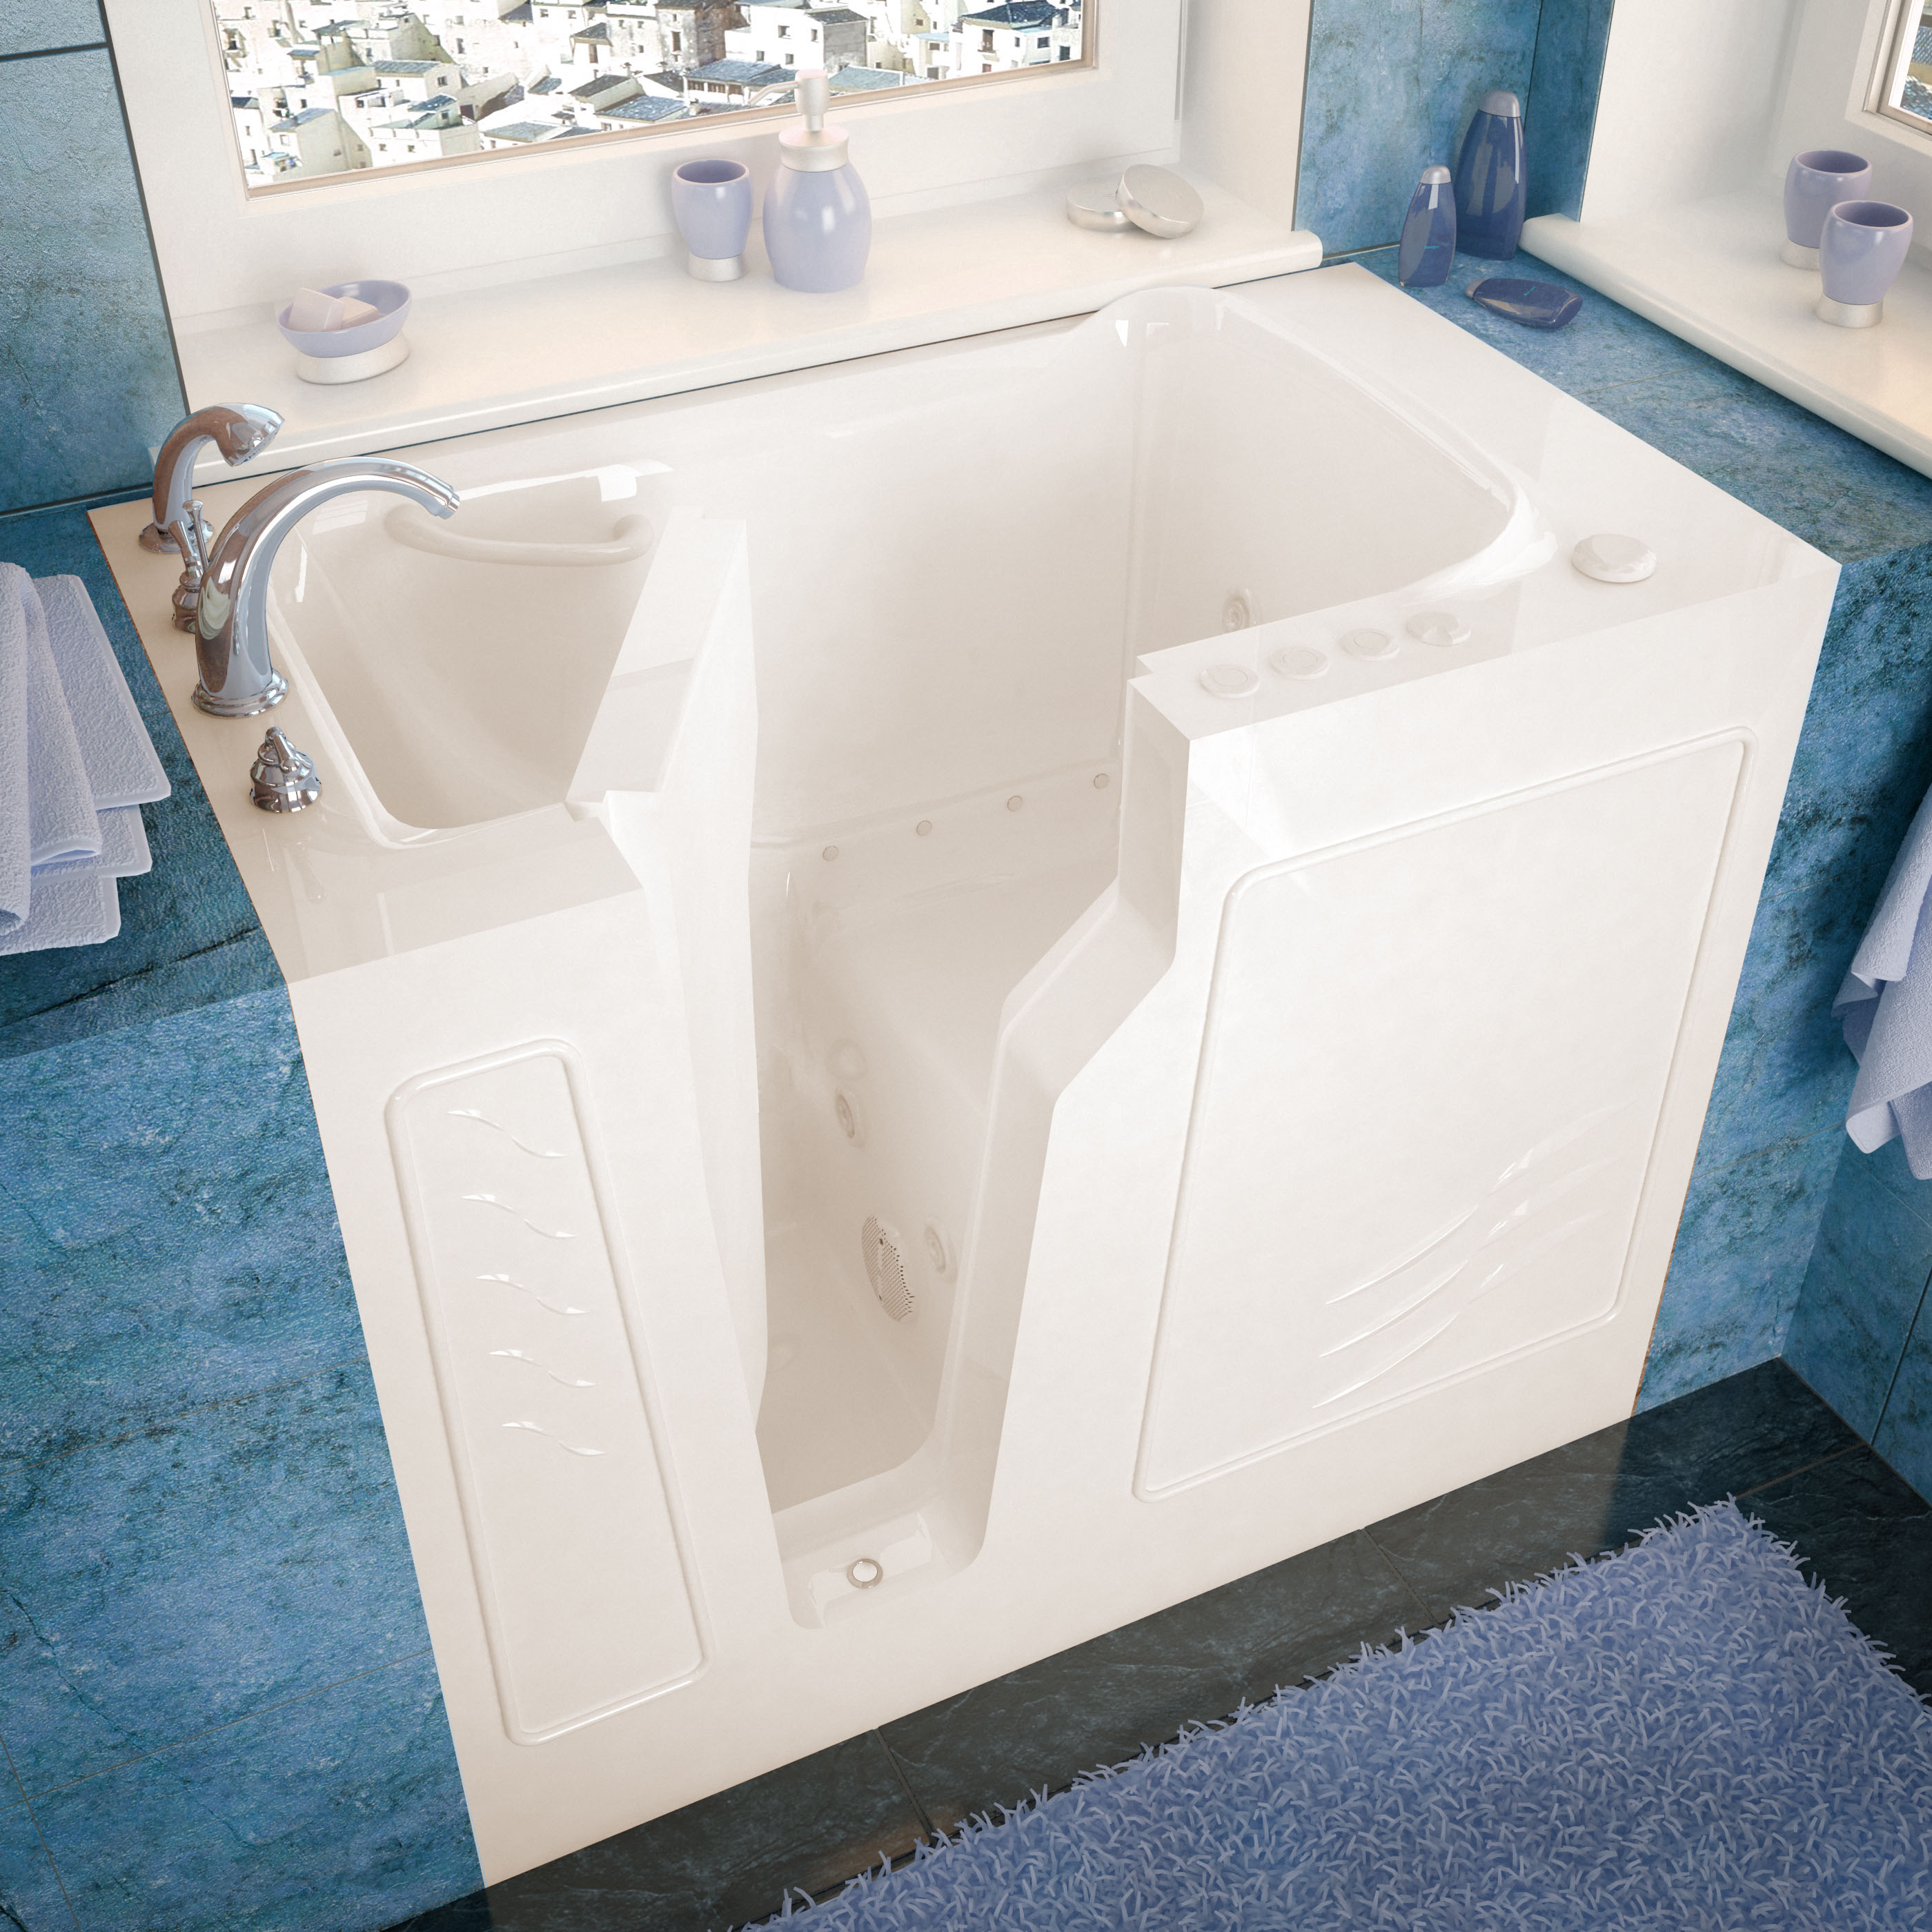 26x46 Left Drain Biscuit Whirlpool & Air Jetted Walk-In Bathtub